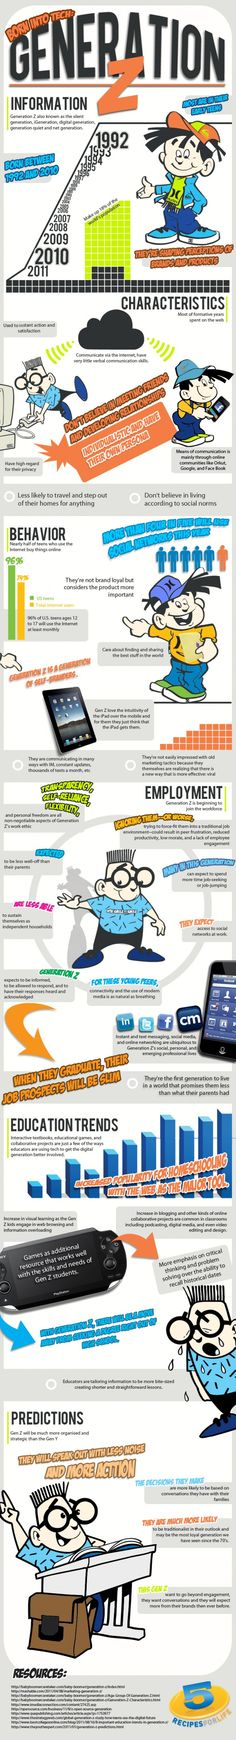 Generation Z Infographic. Interesting. This is a generation who never knew a time when the internet did not exist.